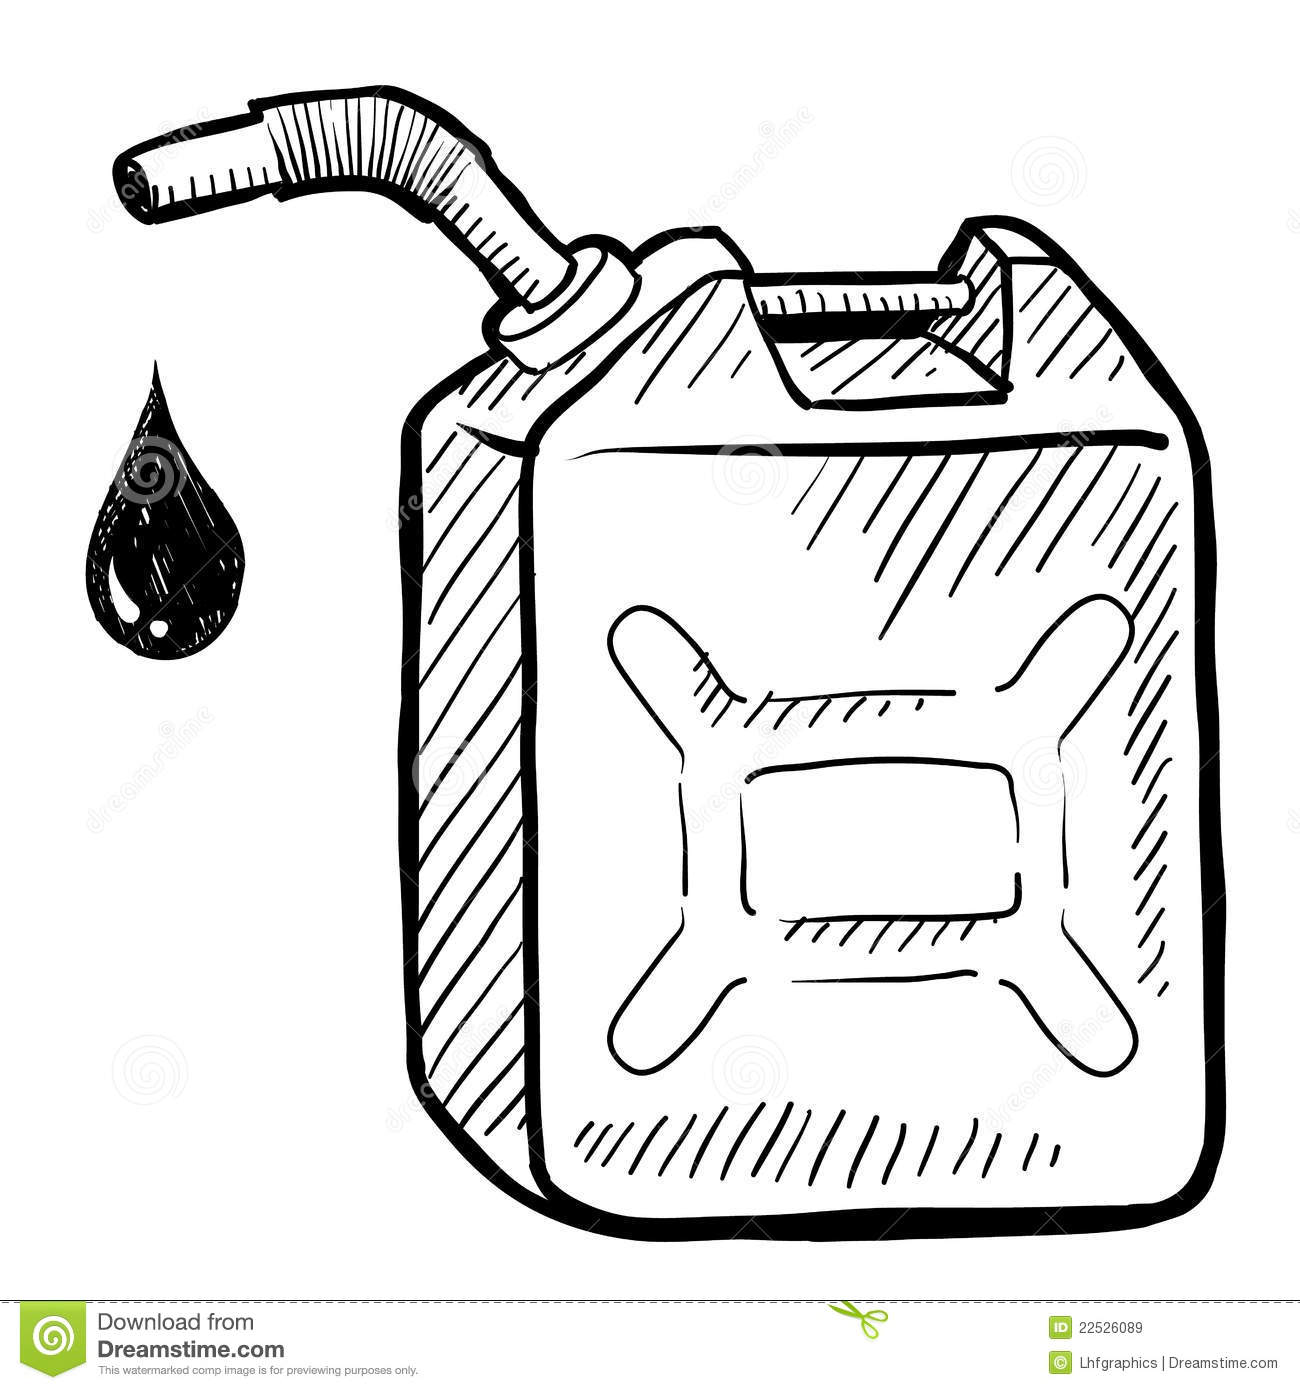 Gasoline Or Petrol Can Sketch Royalty Free Stock Images.